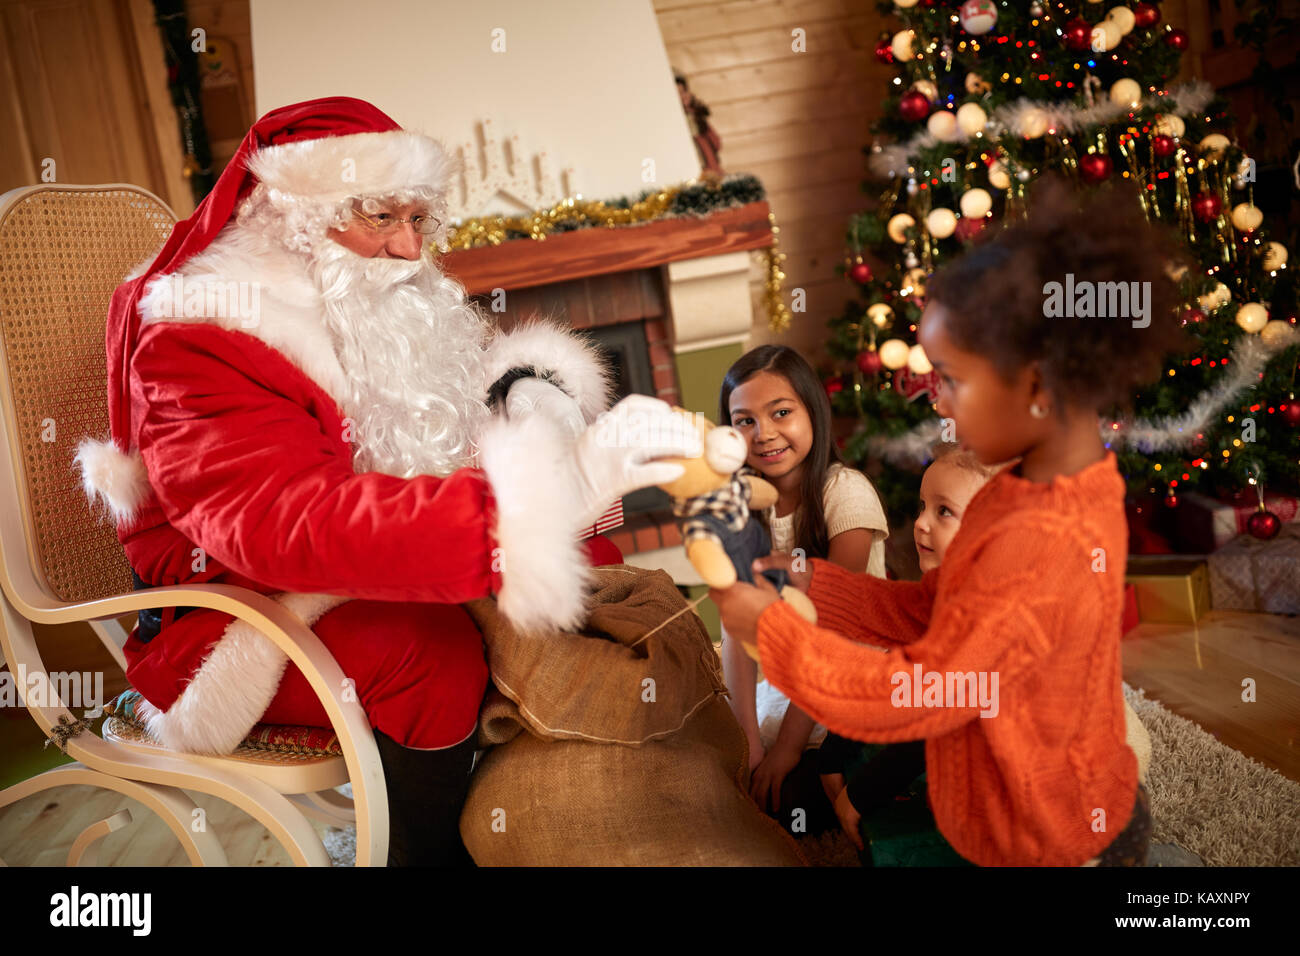 Santa claus giving gifts to children in their living room stock santa claus giving gifts to children in their living room negle Choice Image